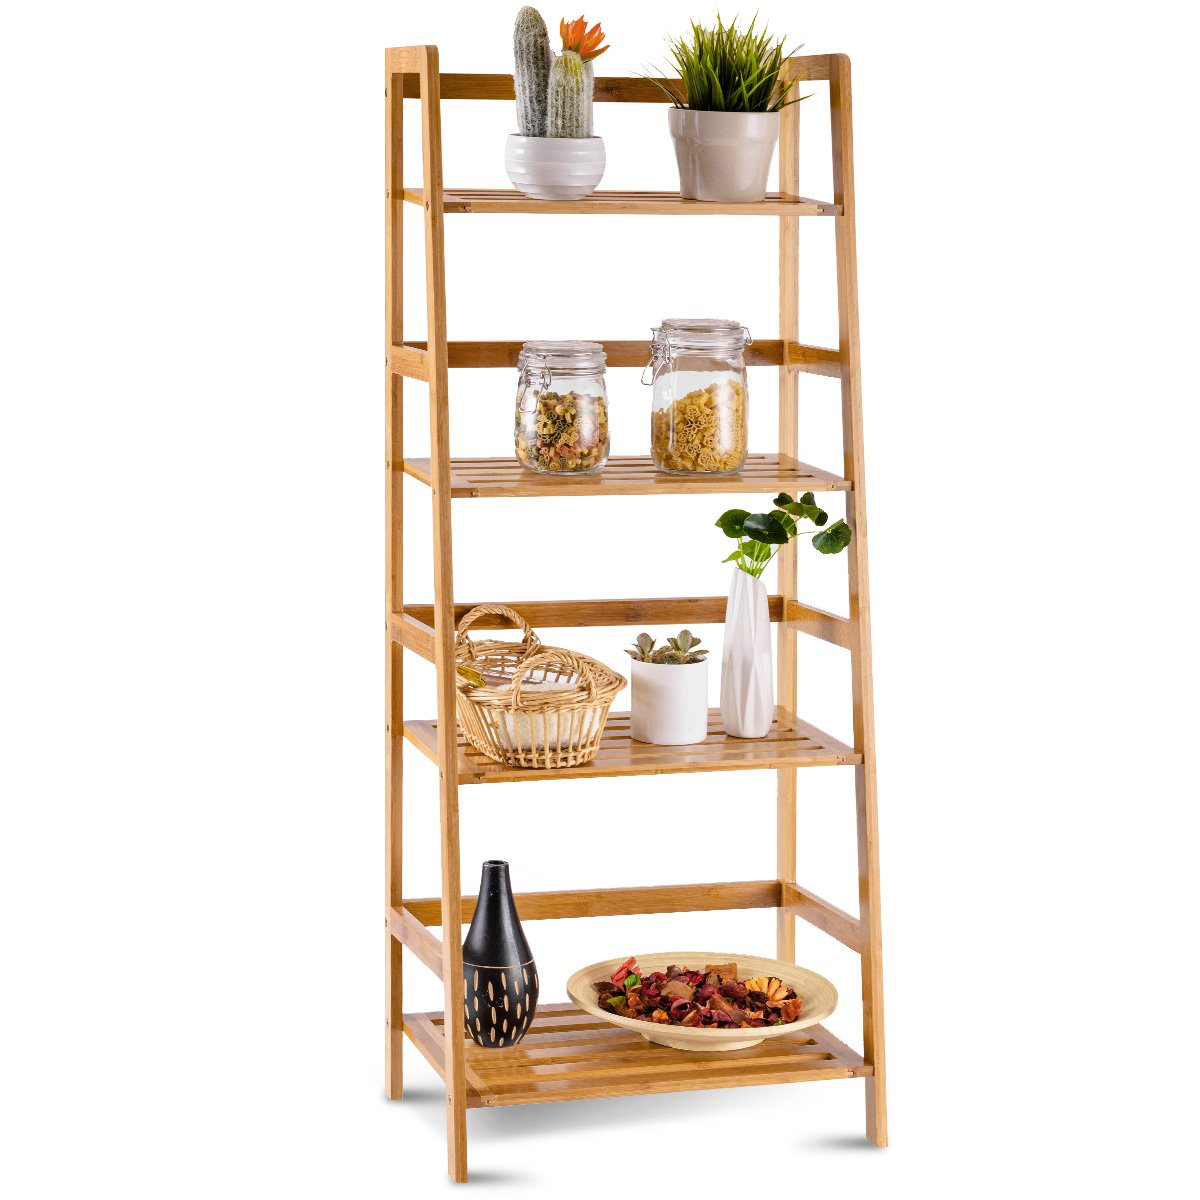 COSTWAY 4 Tier Bamboo Ladder Shelf Multifunctional Plant Flower Display Stand Storage Rack Bookcase Bookshelf Natural (4-Tier)